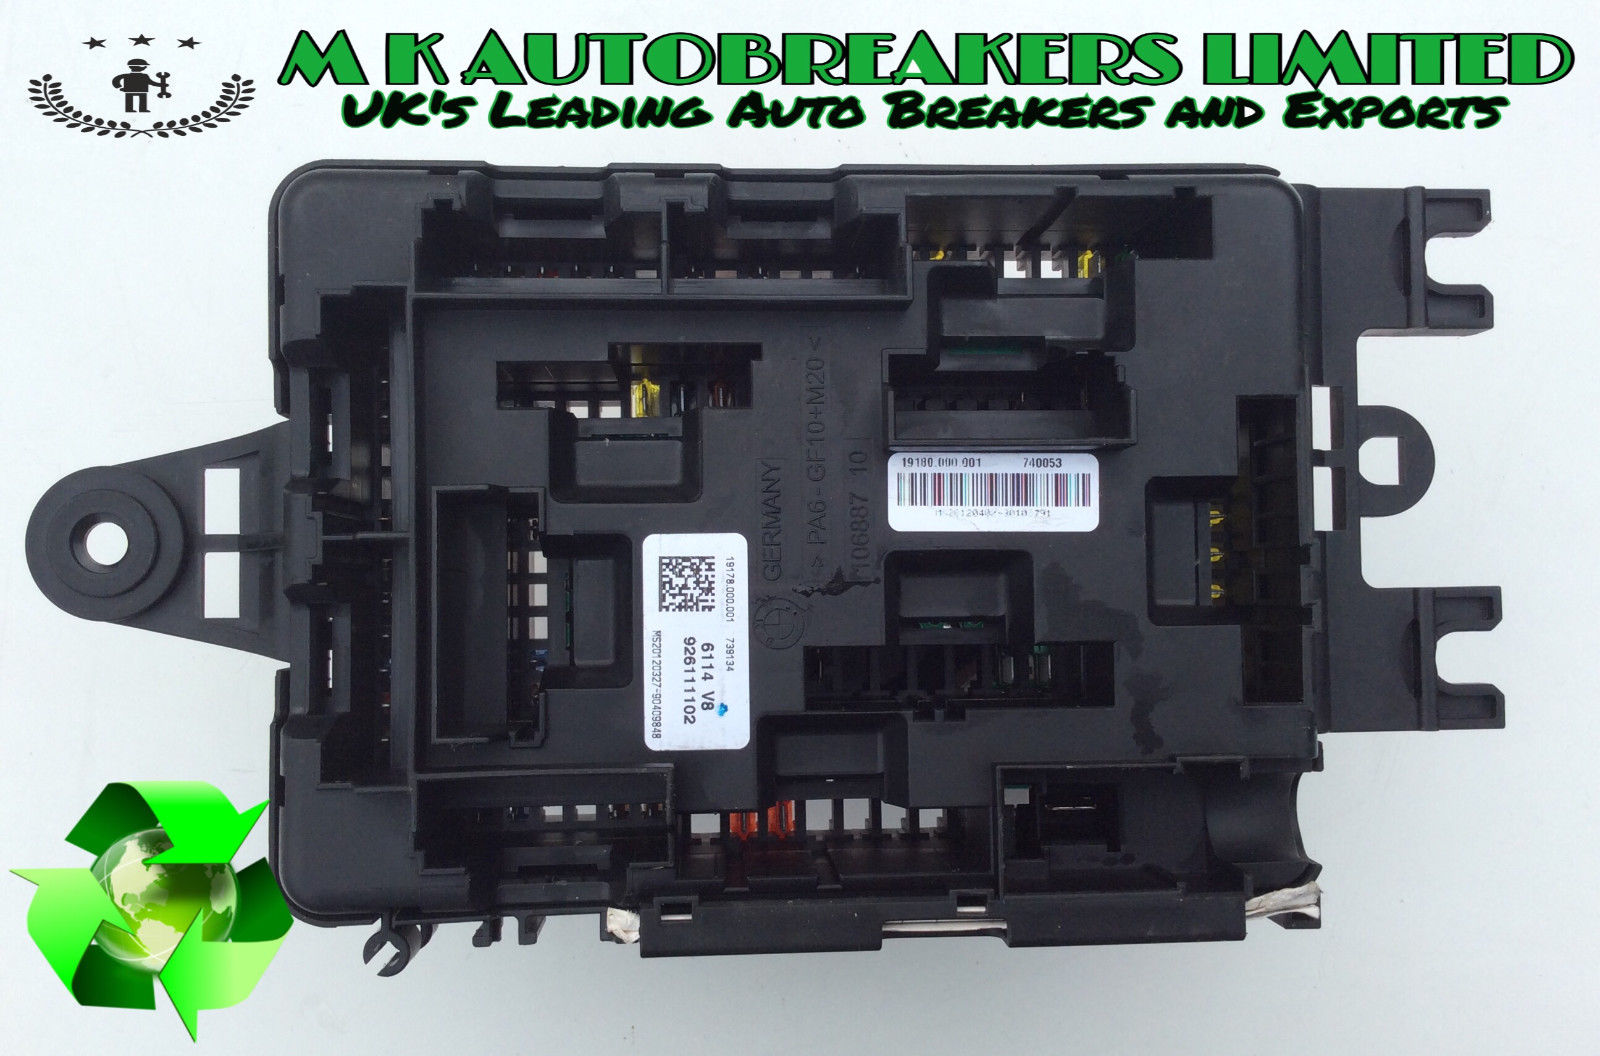 fuse box buy spares for bmw e fuses and simple wiring diagram schemafuse box buy spares for bmw e fuses and wiring library bmw f30 from 12 15